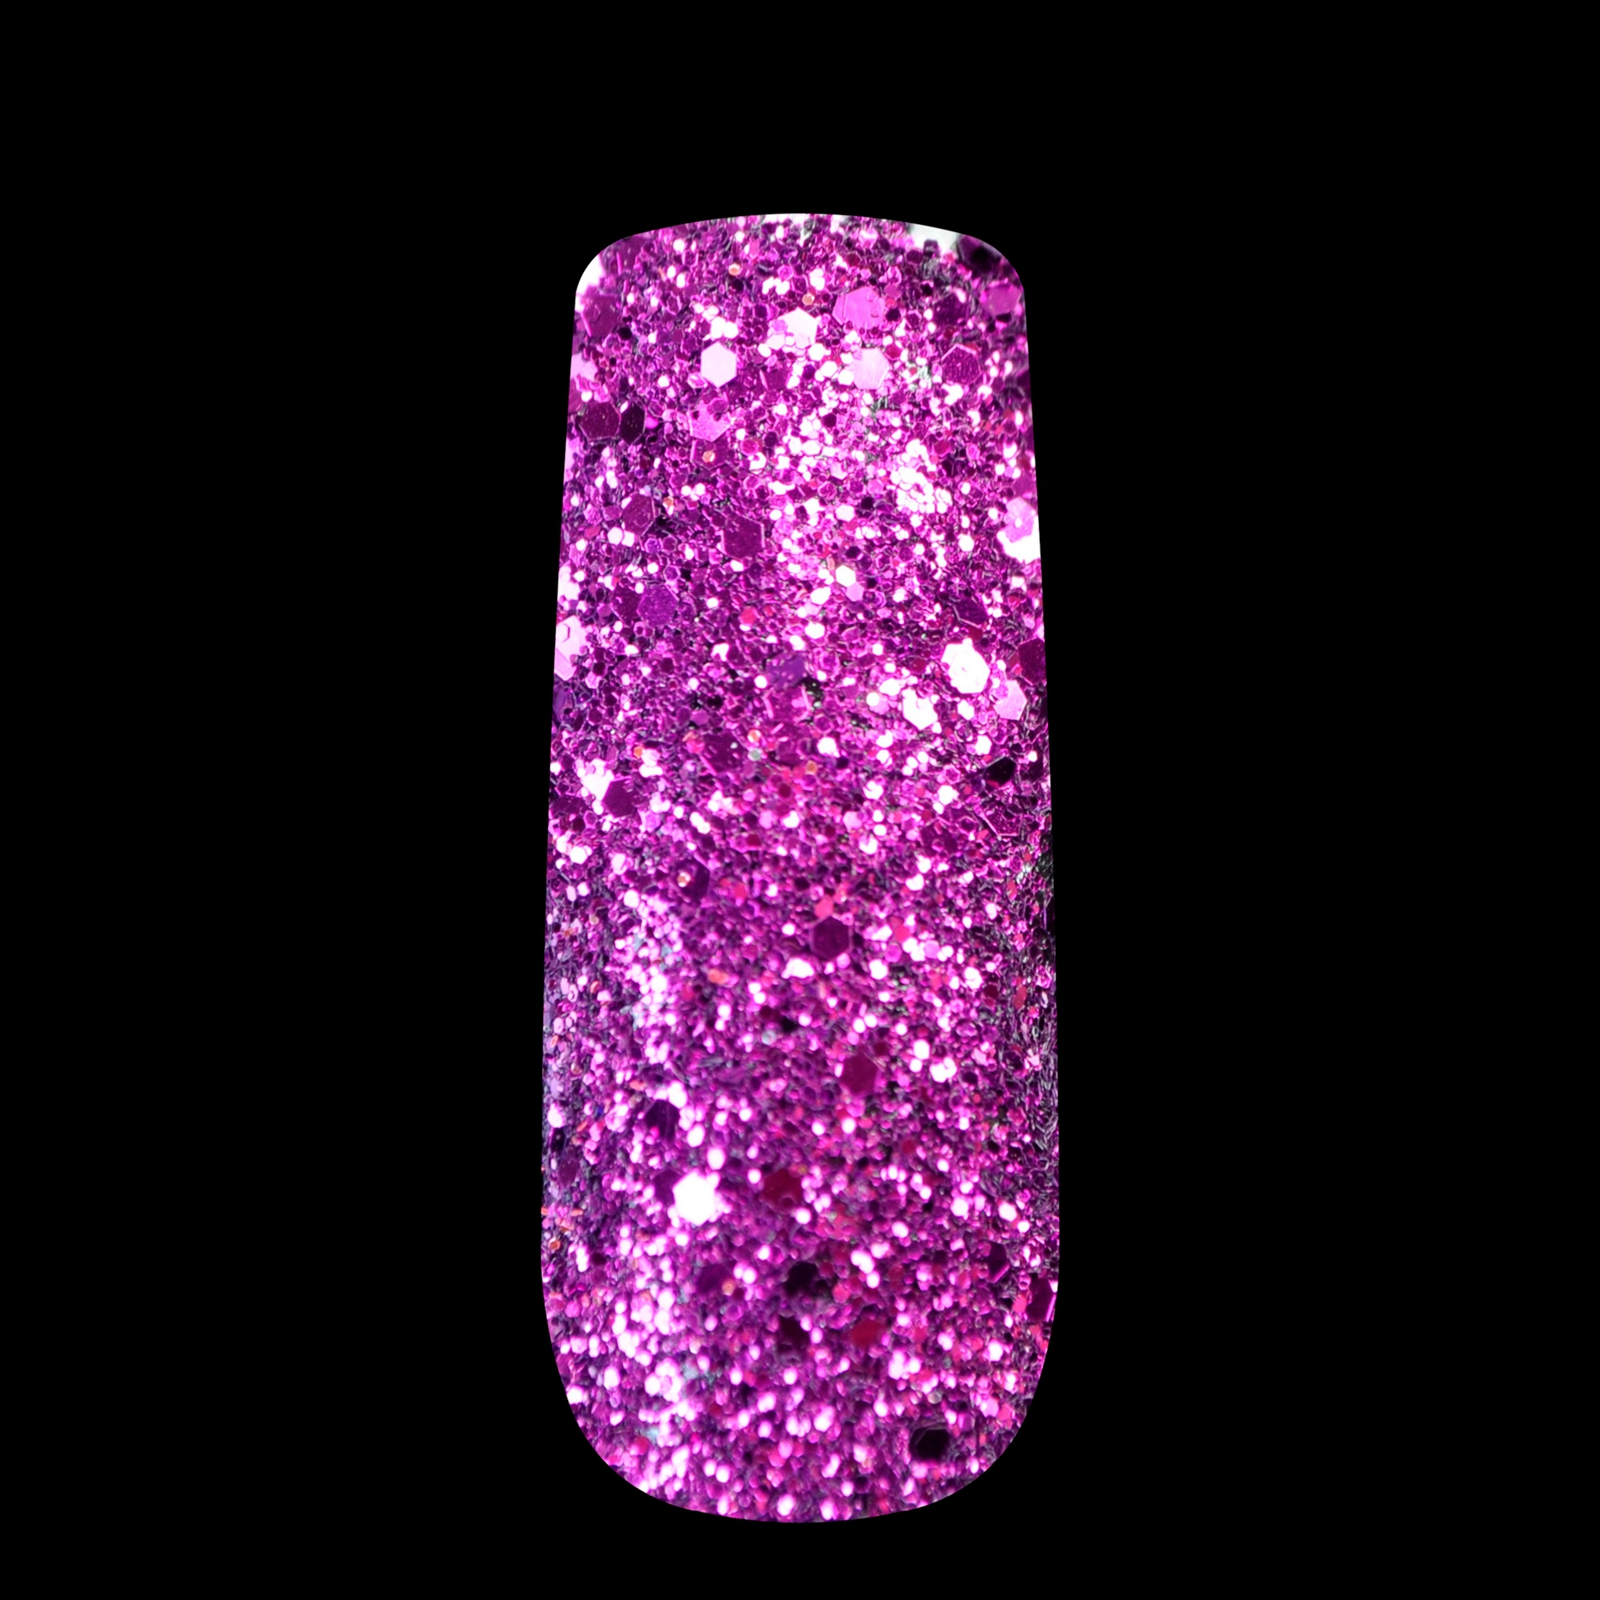 100g/bag Dazzling Sequins Dust Mix Nail Glitter Decorations DIY Nail Art Designs Acrylic UV Glitter Powder Makeup Tool Wholesale nail art 3d polymer clay tiny fimo fruit slices wheel nail art diy designs wheel nail art decorations wholesale